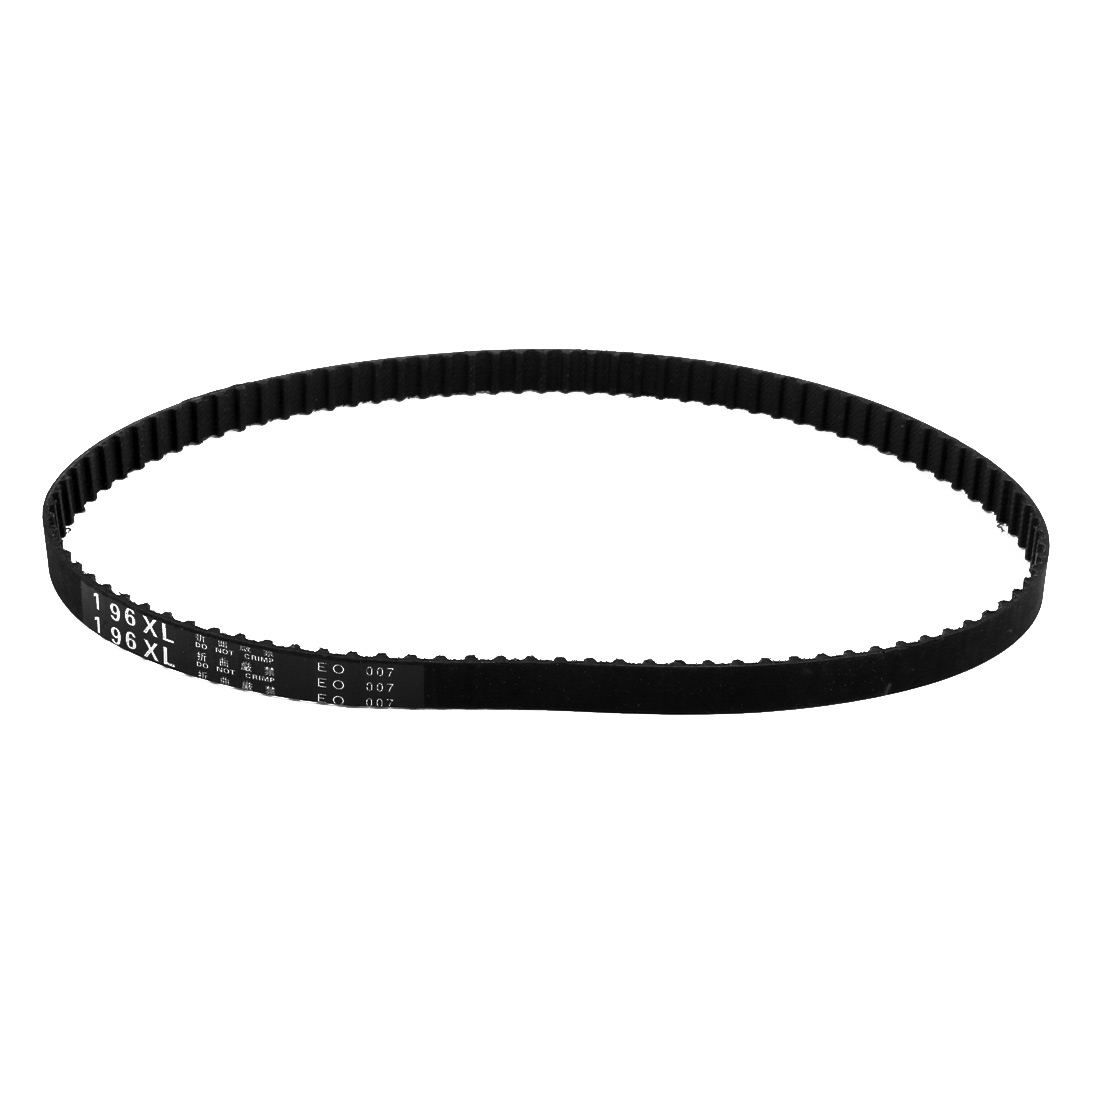 196XL 98 Teeth 10mm x 5.08mm Rubber Timing Geared Belt for Stepper Motor Black